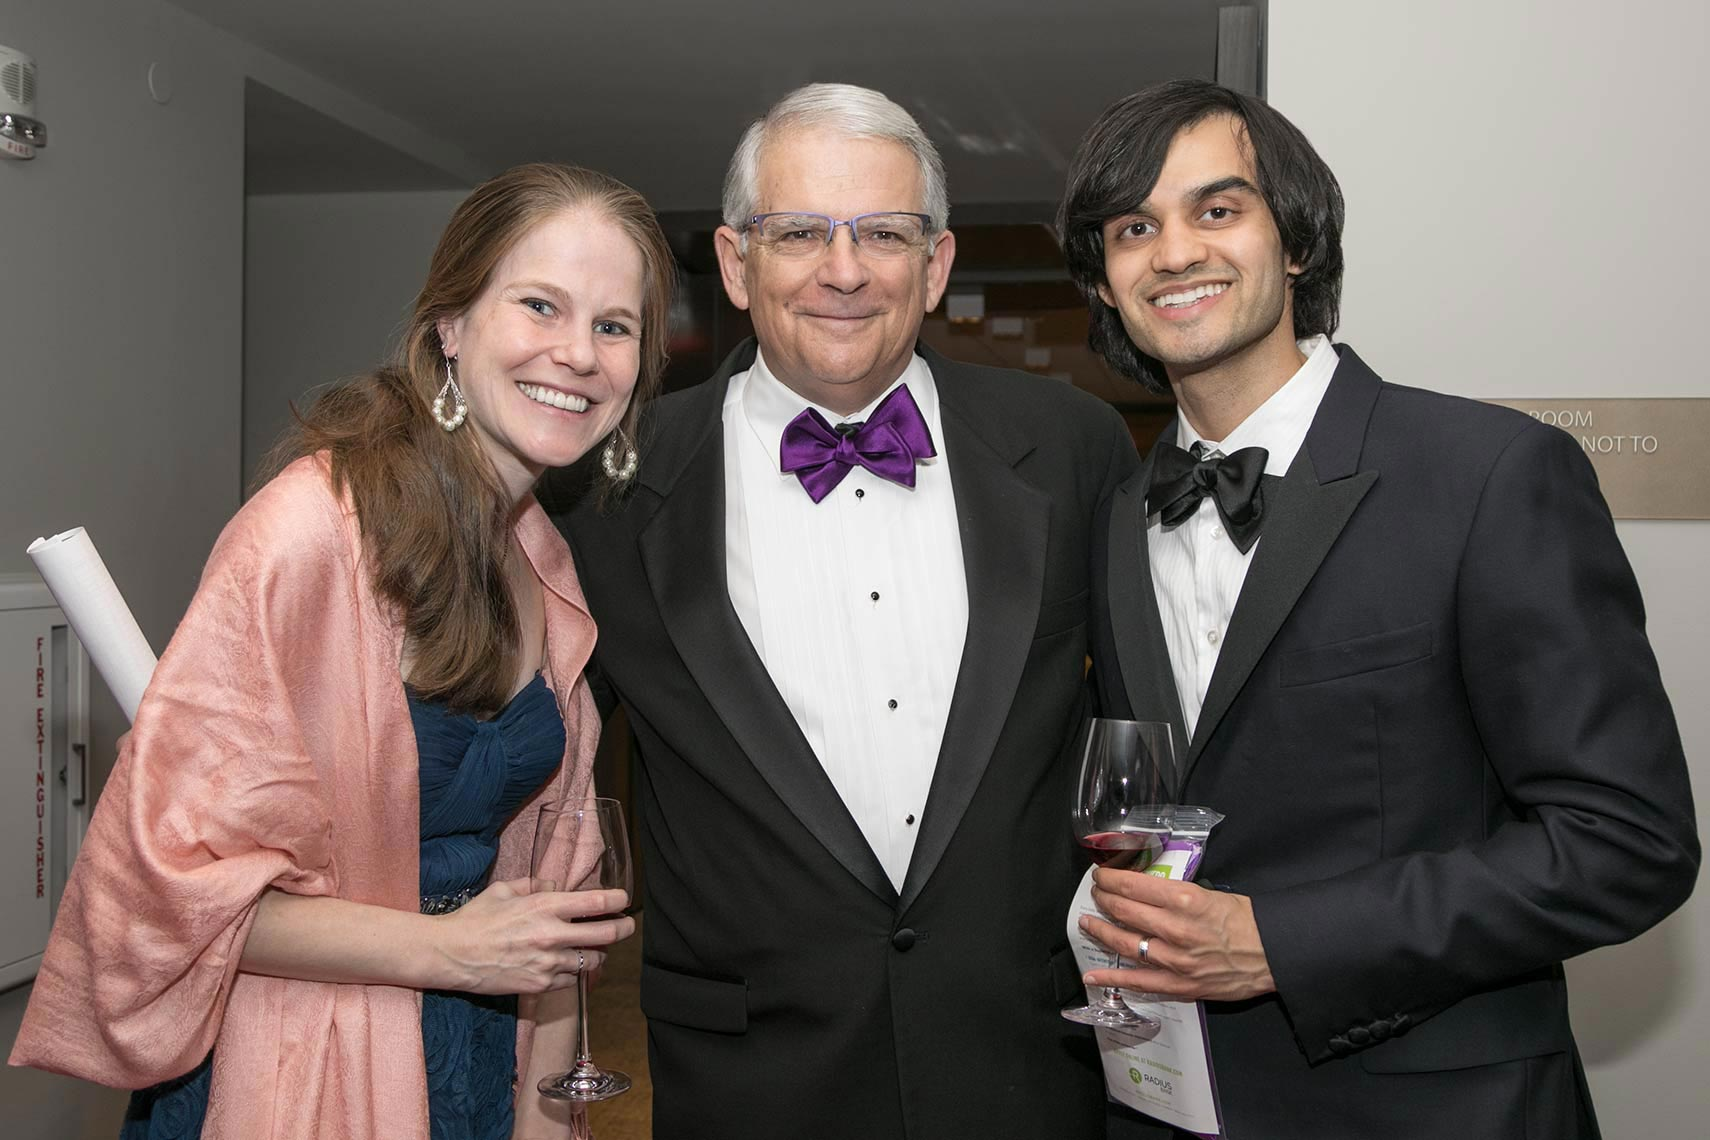 014-March-of-Dimes-Executive-Director-Ed-Doherty-with-friends-at-the-Black-Ties-for-Babies-gala-in-Boston